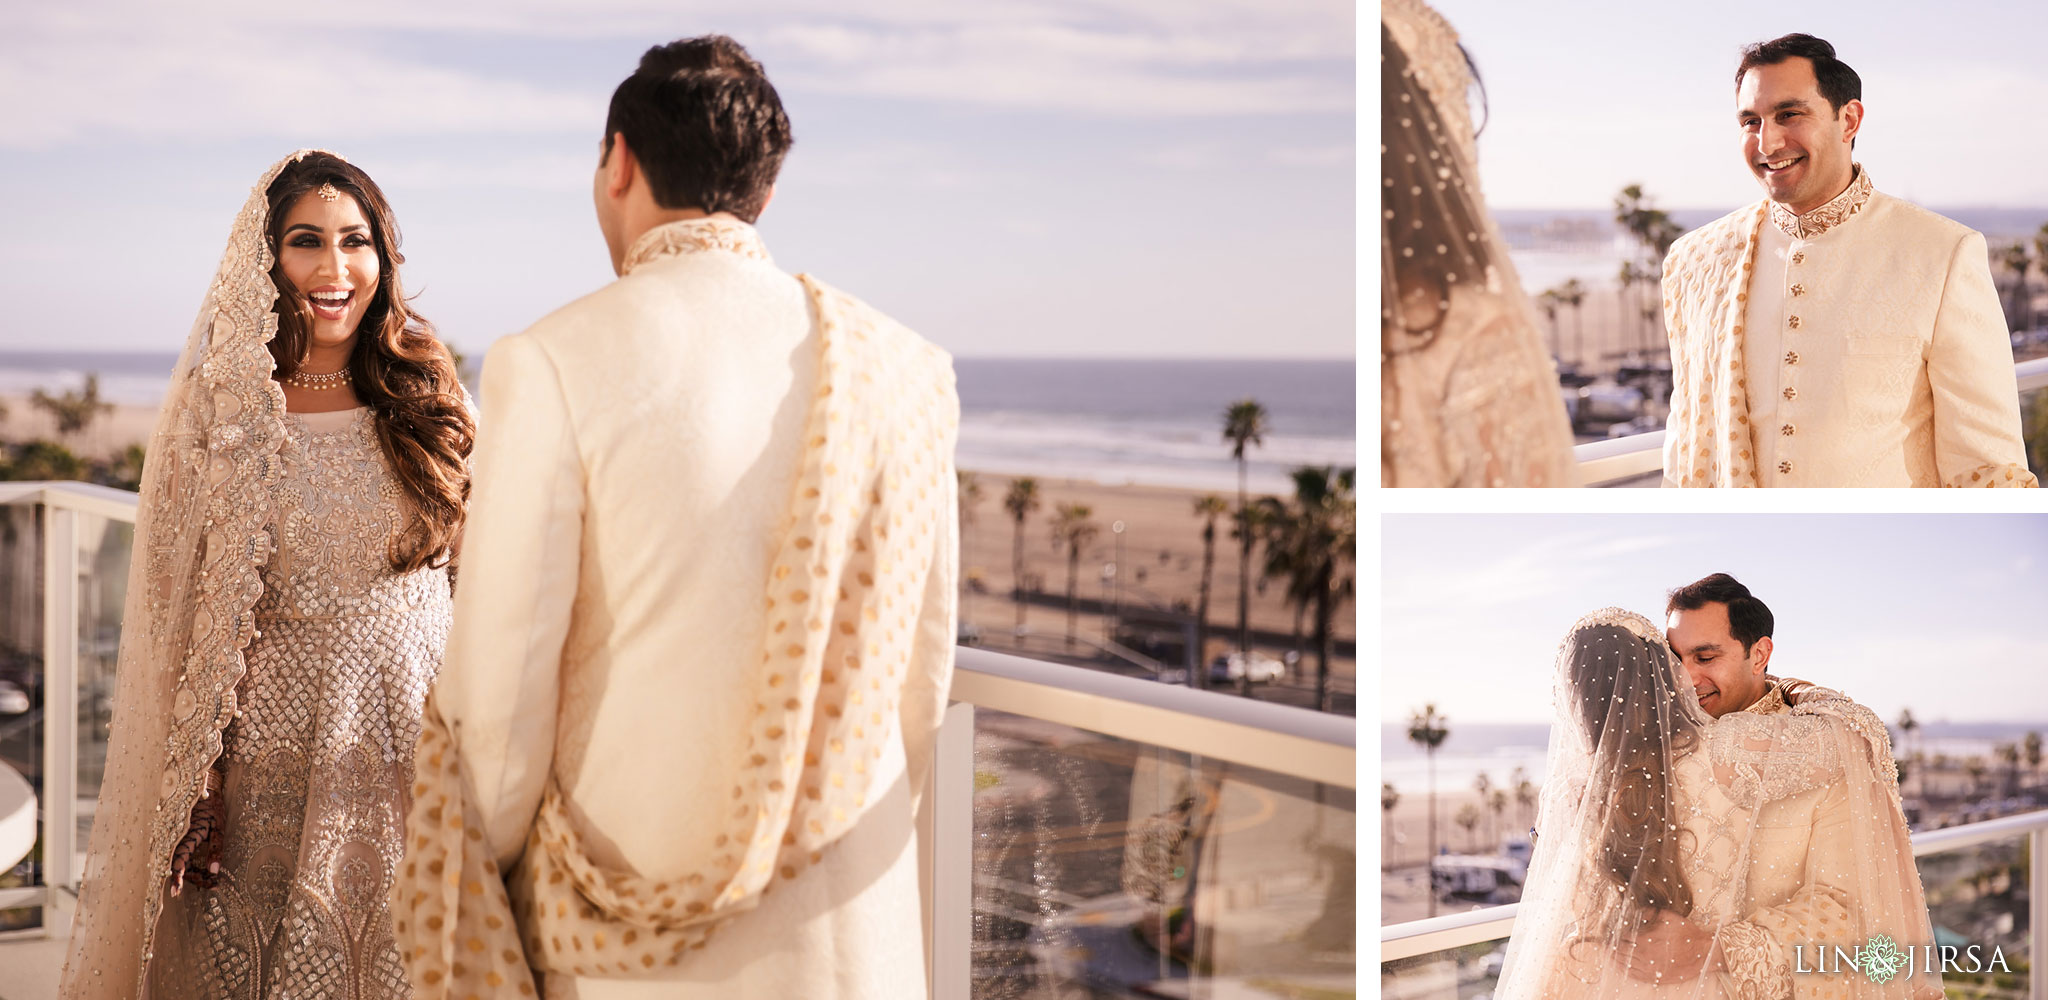 12 pasea hotel spa huntington beach pakistani muslim wedding photography